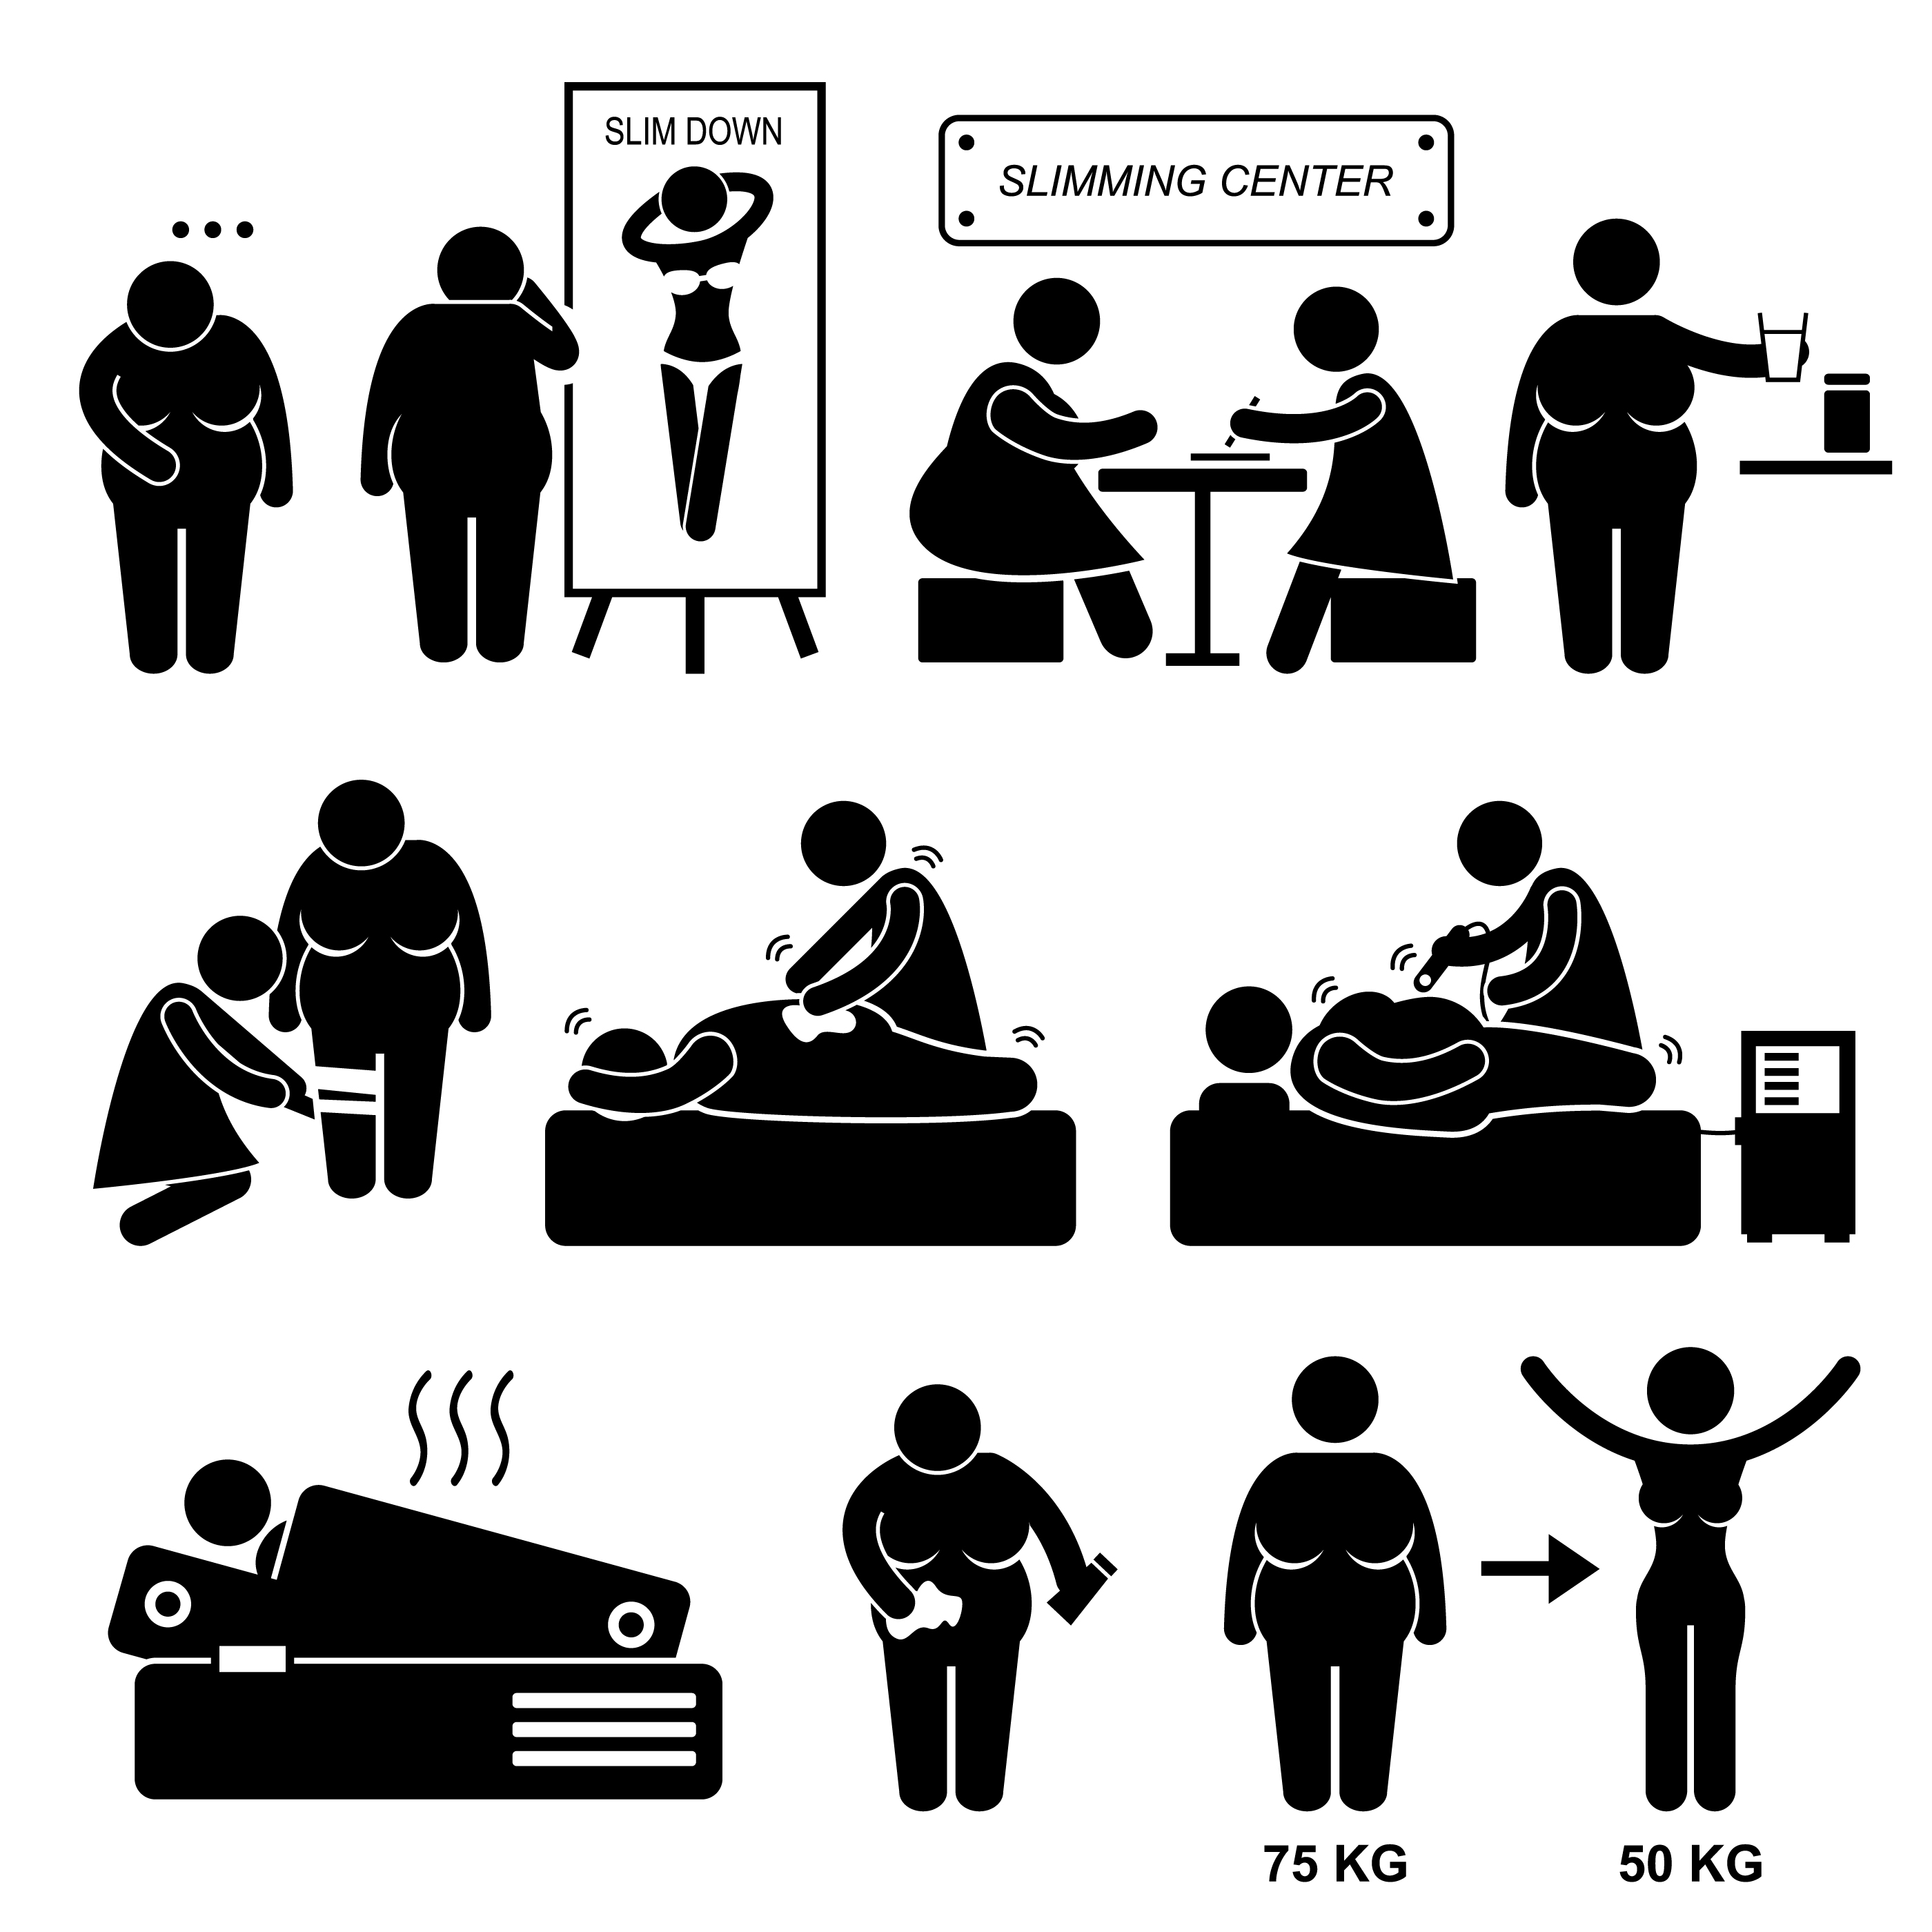 Slimming Center Fat Overweight Woman Treatment Beauty Spa Stick Figure Pictogram Icon Download Free Vectors Clipart Graphics Vector Art